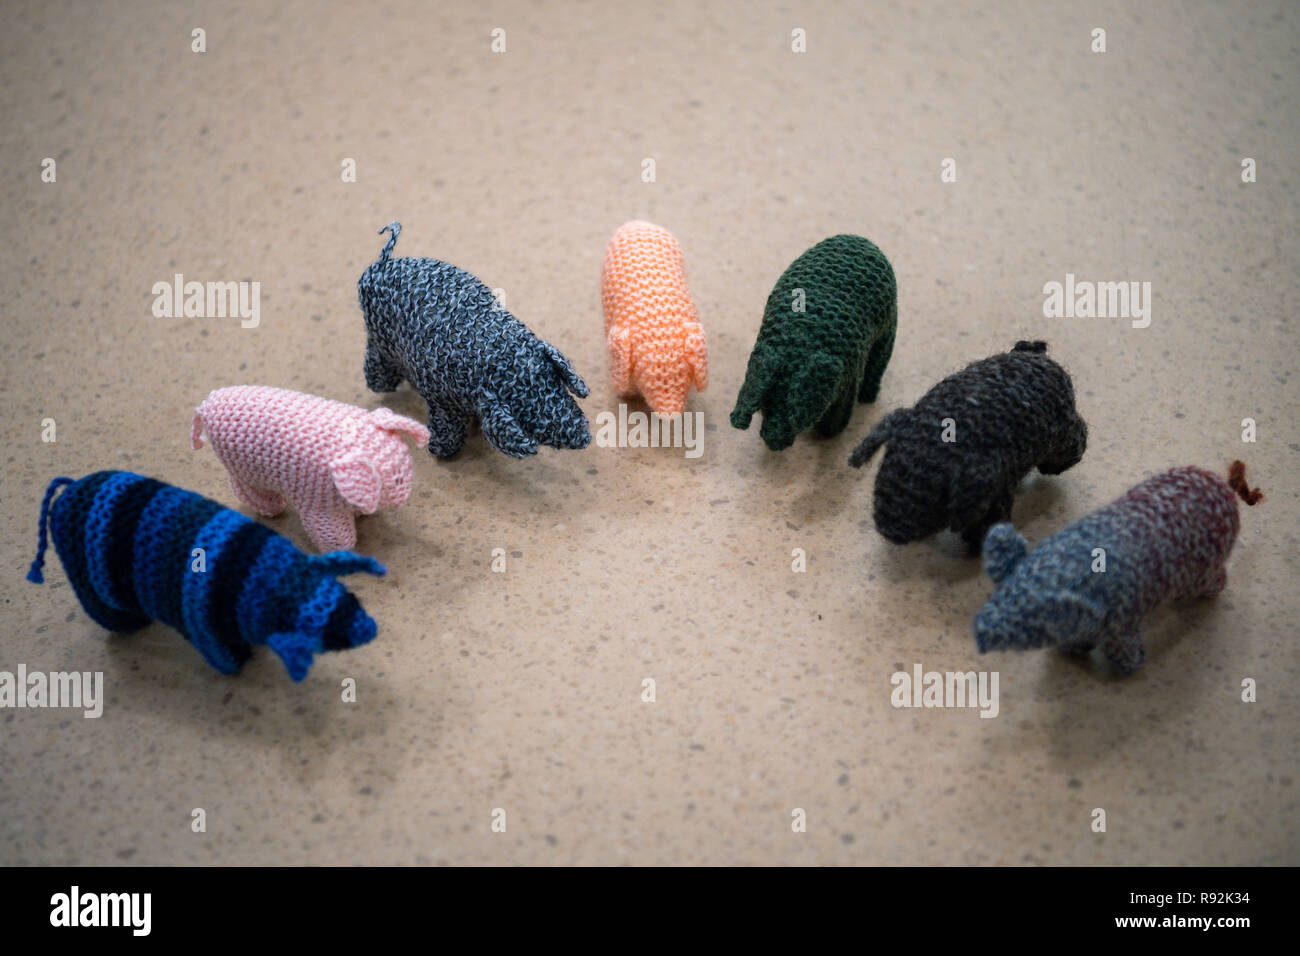 """Oldenburg, Germany. 18th Dec, 2018. A view of small woolly pigs called Kohlfietjes. Senior women in a housing project produce these by hand. (to dpa """"From Steckenpferd to Löwenhelm - this is how Niedersachsen markets itself"""" from 19.12.2018) Credit: Mohssen Assanimoghaddam/dpa/Alamy Live News Stock Photo"""